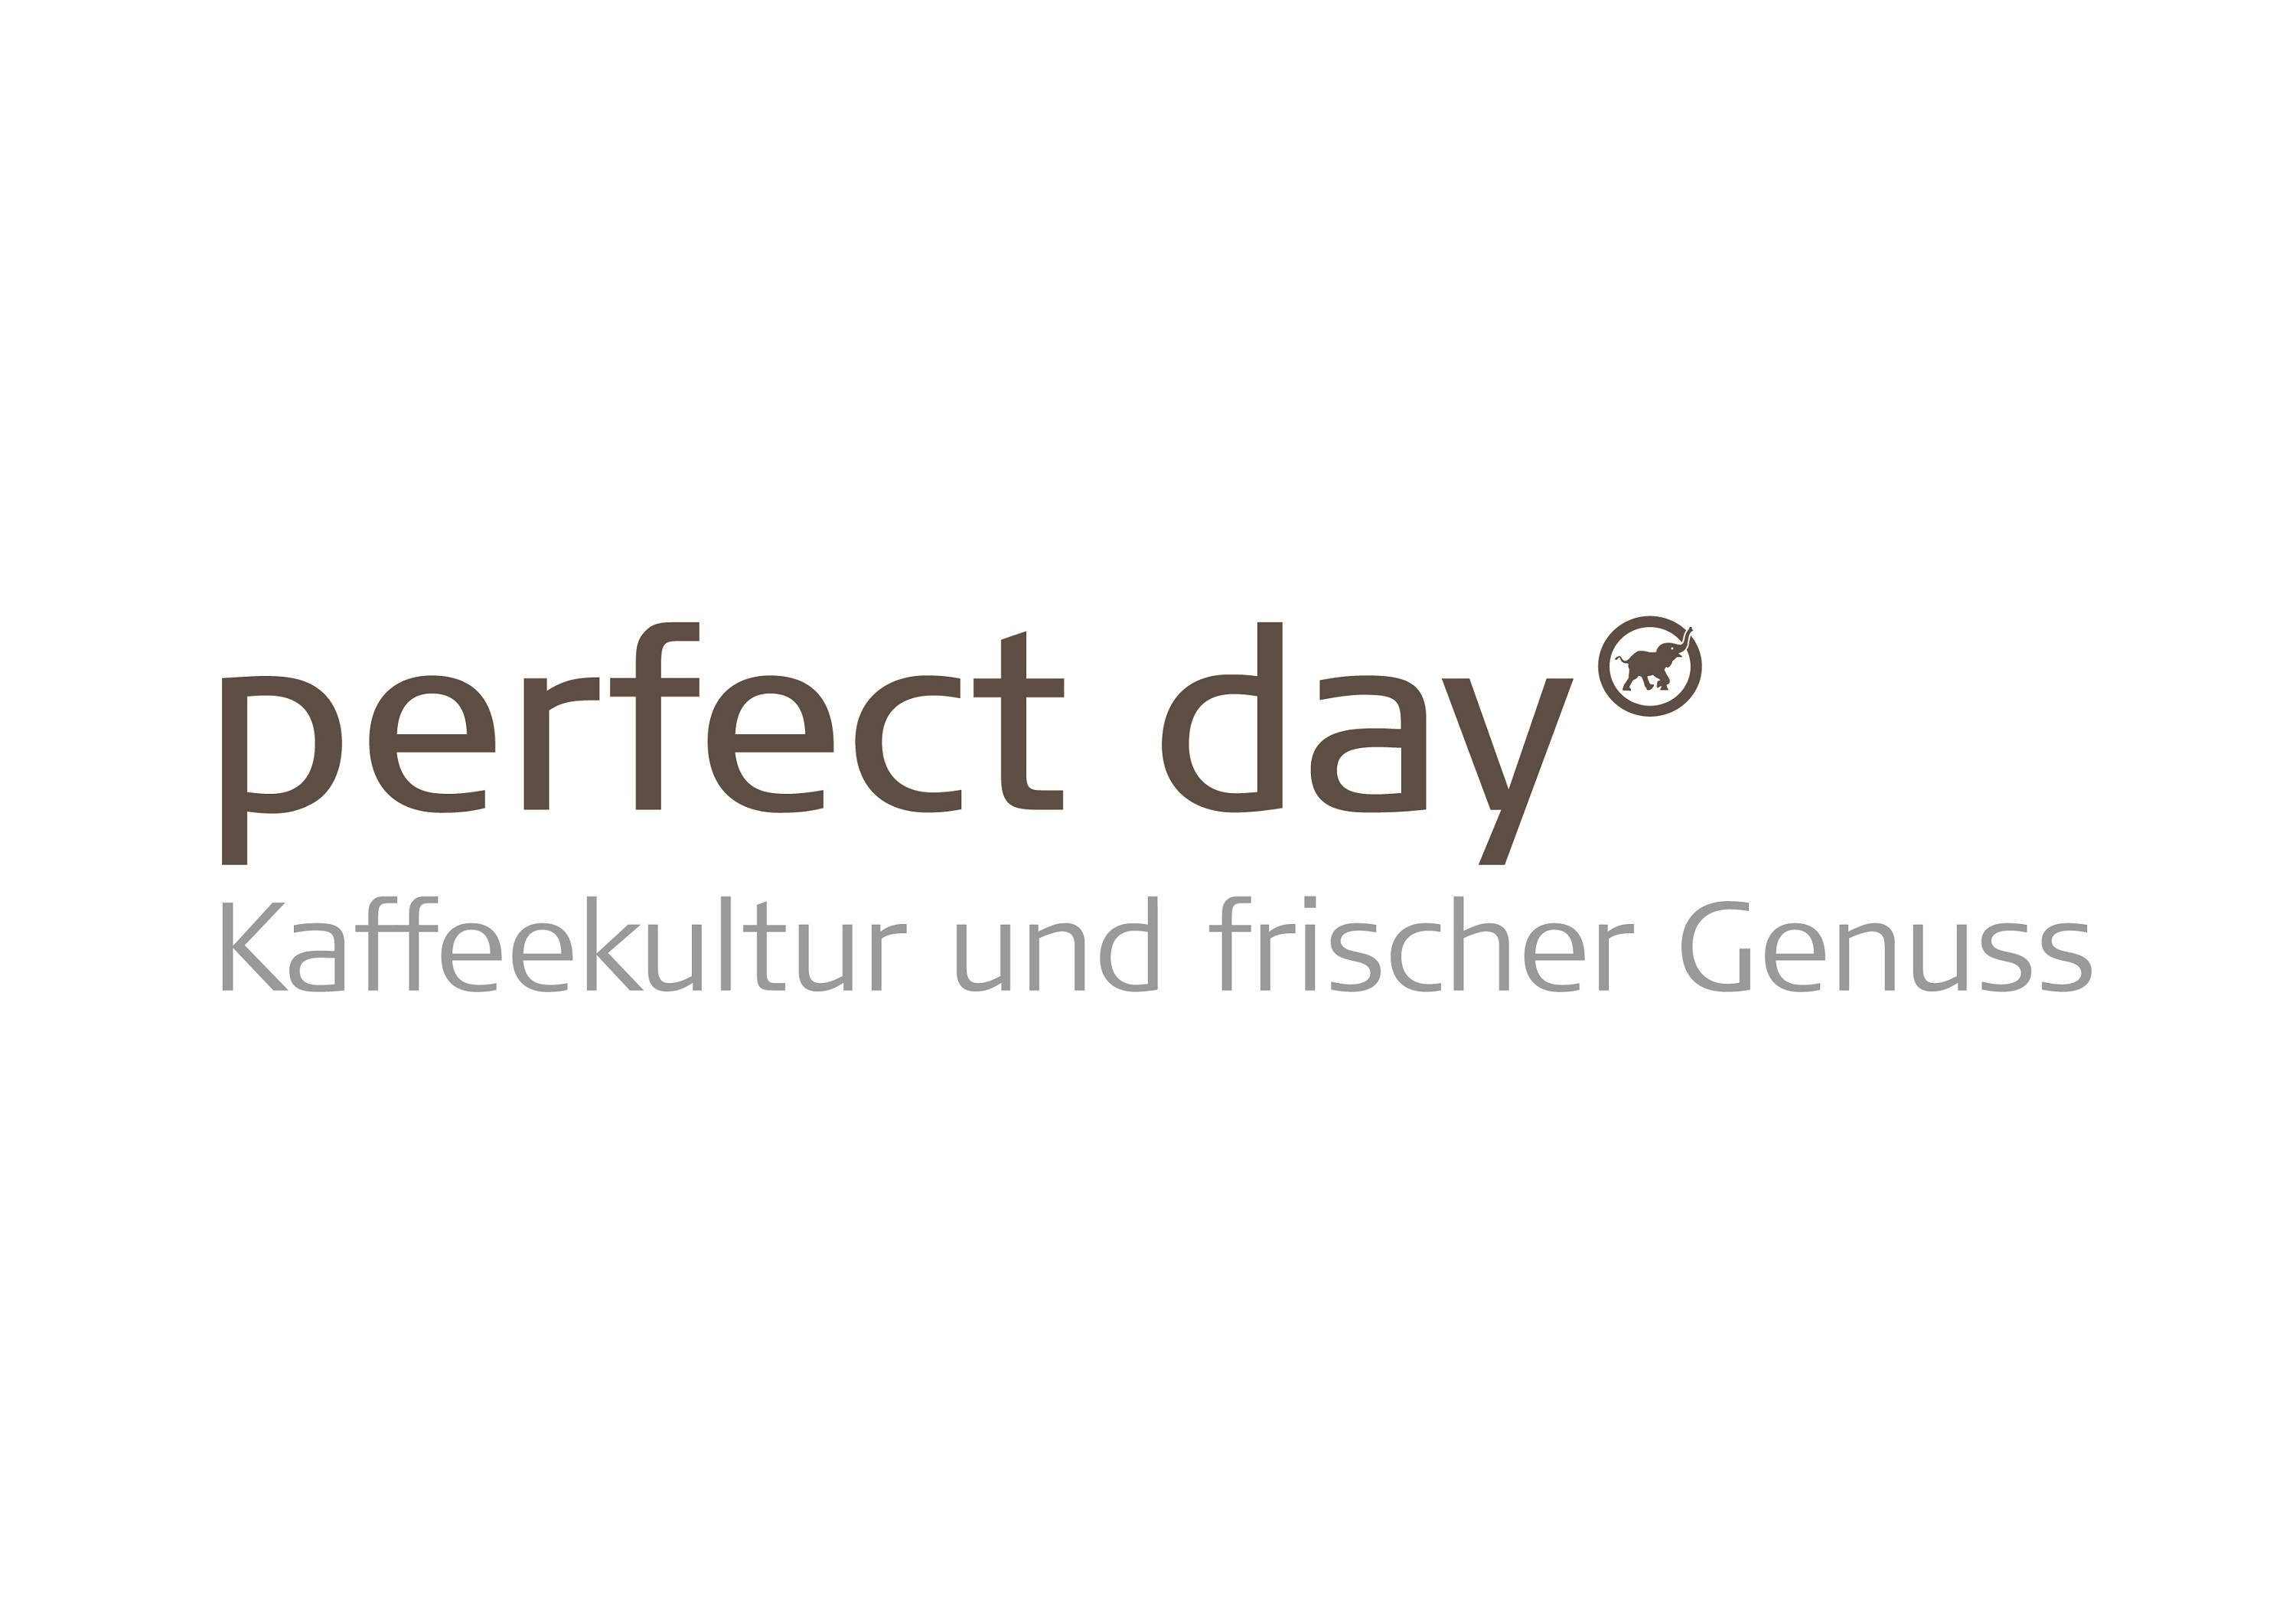 perfect day GmbH & Co.KG